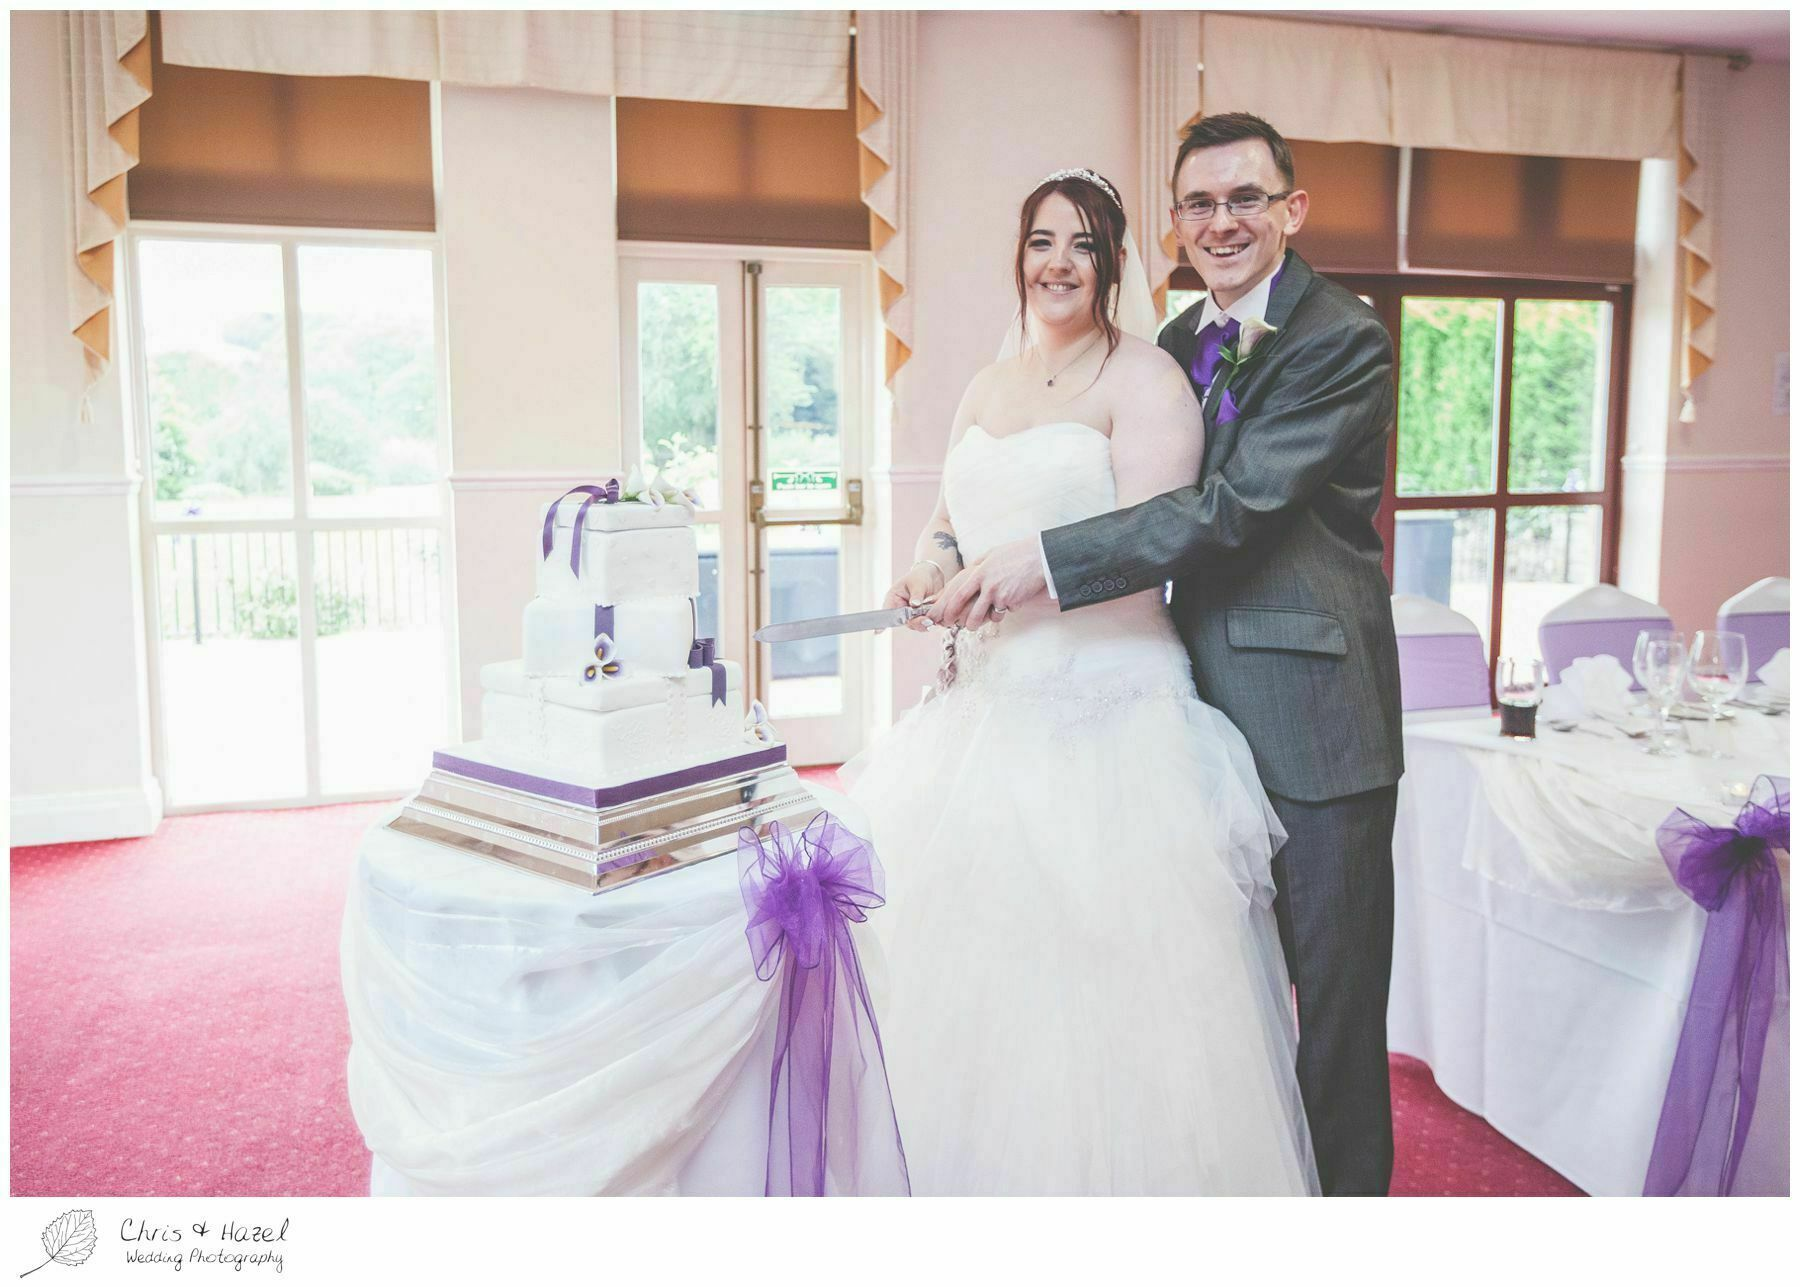 bride and groom cake cutting, bagden hall wedding venue, documentary wedding photography, denny dale, huddersfield, Wedding Photographer, Bagden Hall, Wedding Photography, Chris and Hazel Wedding Photography, Alex tomenson, Vicky hunt